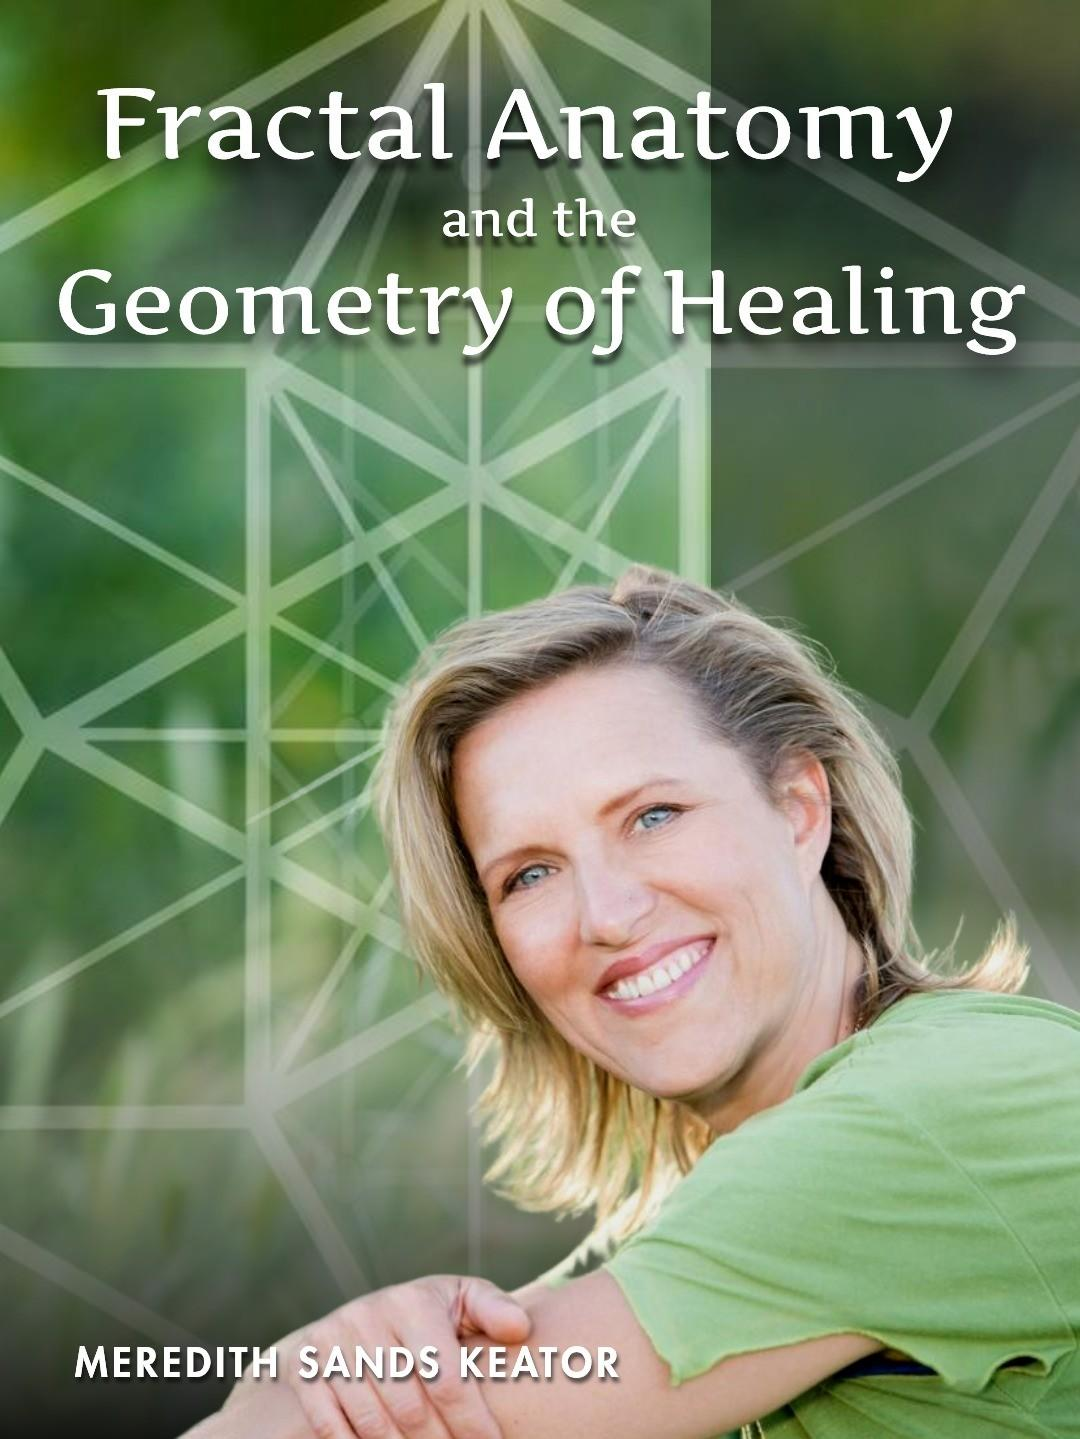 Fractal Anatomy & The Geometry of Healing